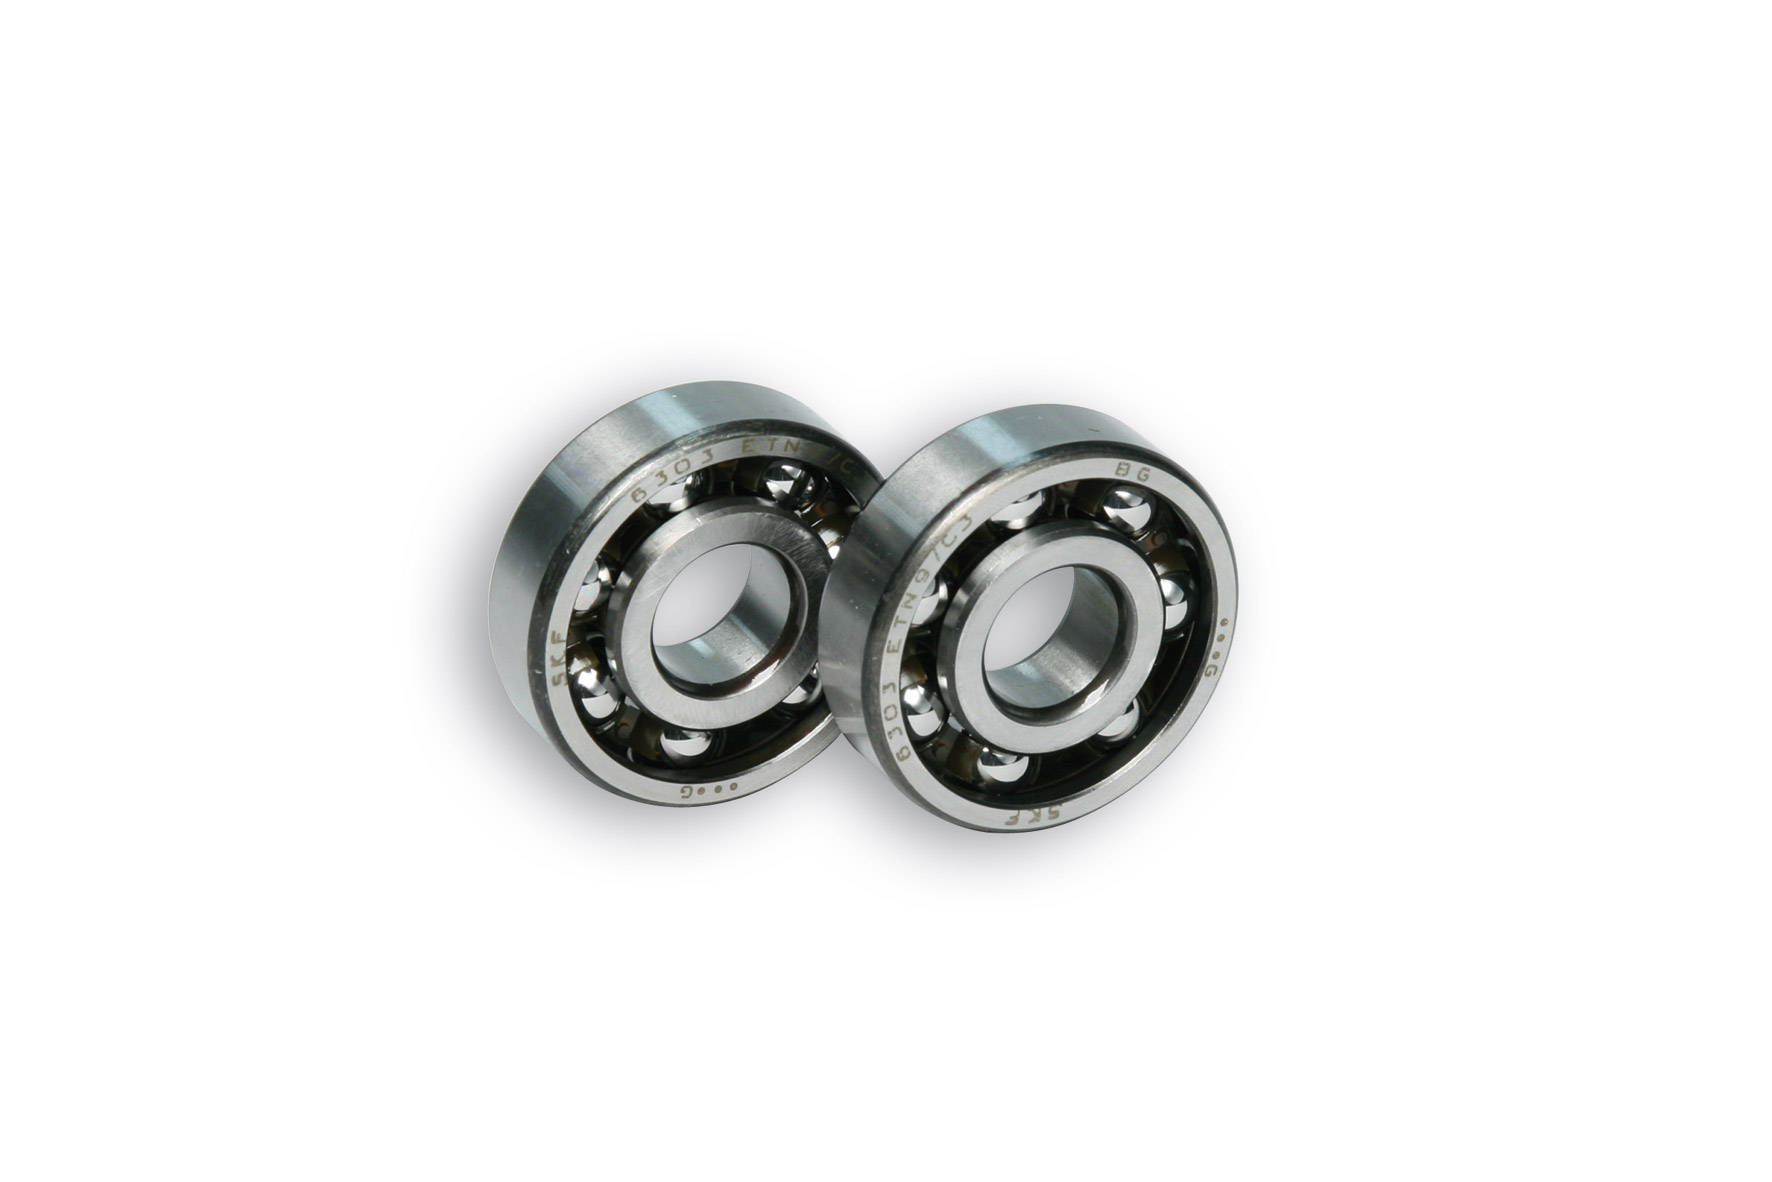 2 ROLLER BEARINGS with BALLS Ø 17x47x14 (C3) for CRANKSH. moto MINARELLI AM